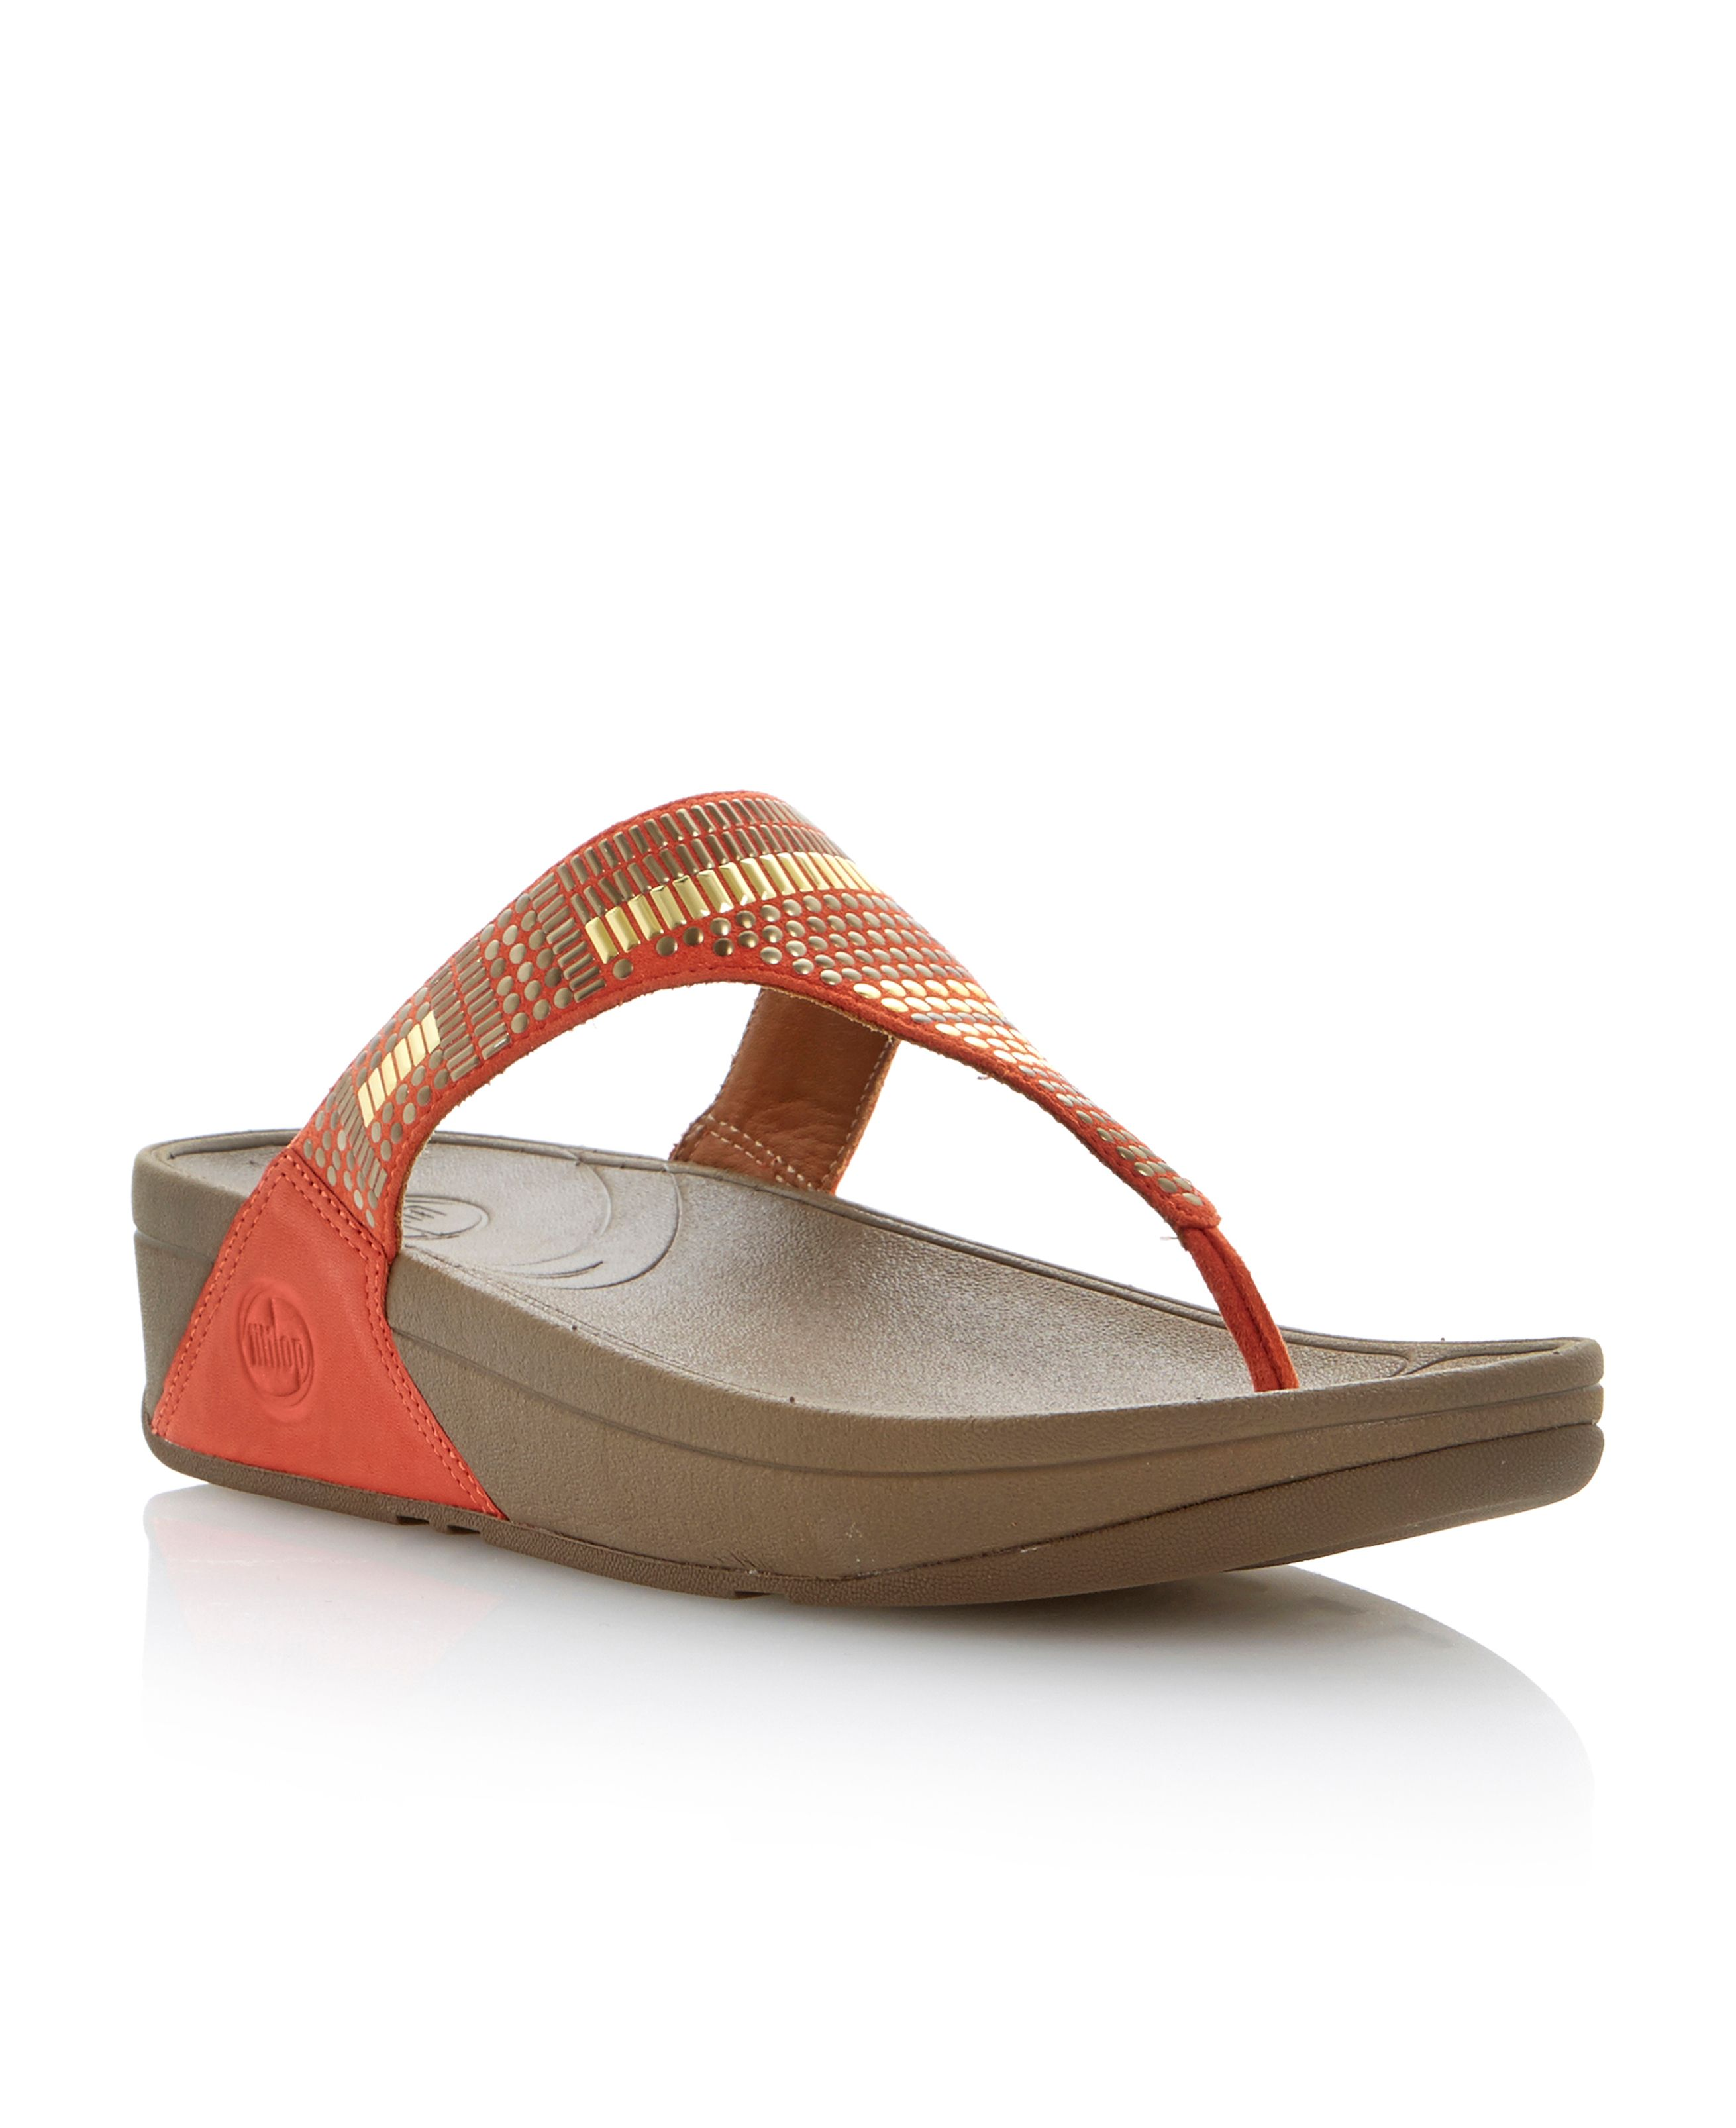 Chada aztek leather round toe wedge sandals